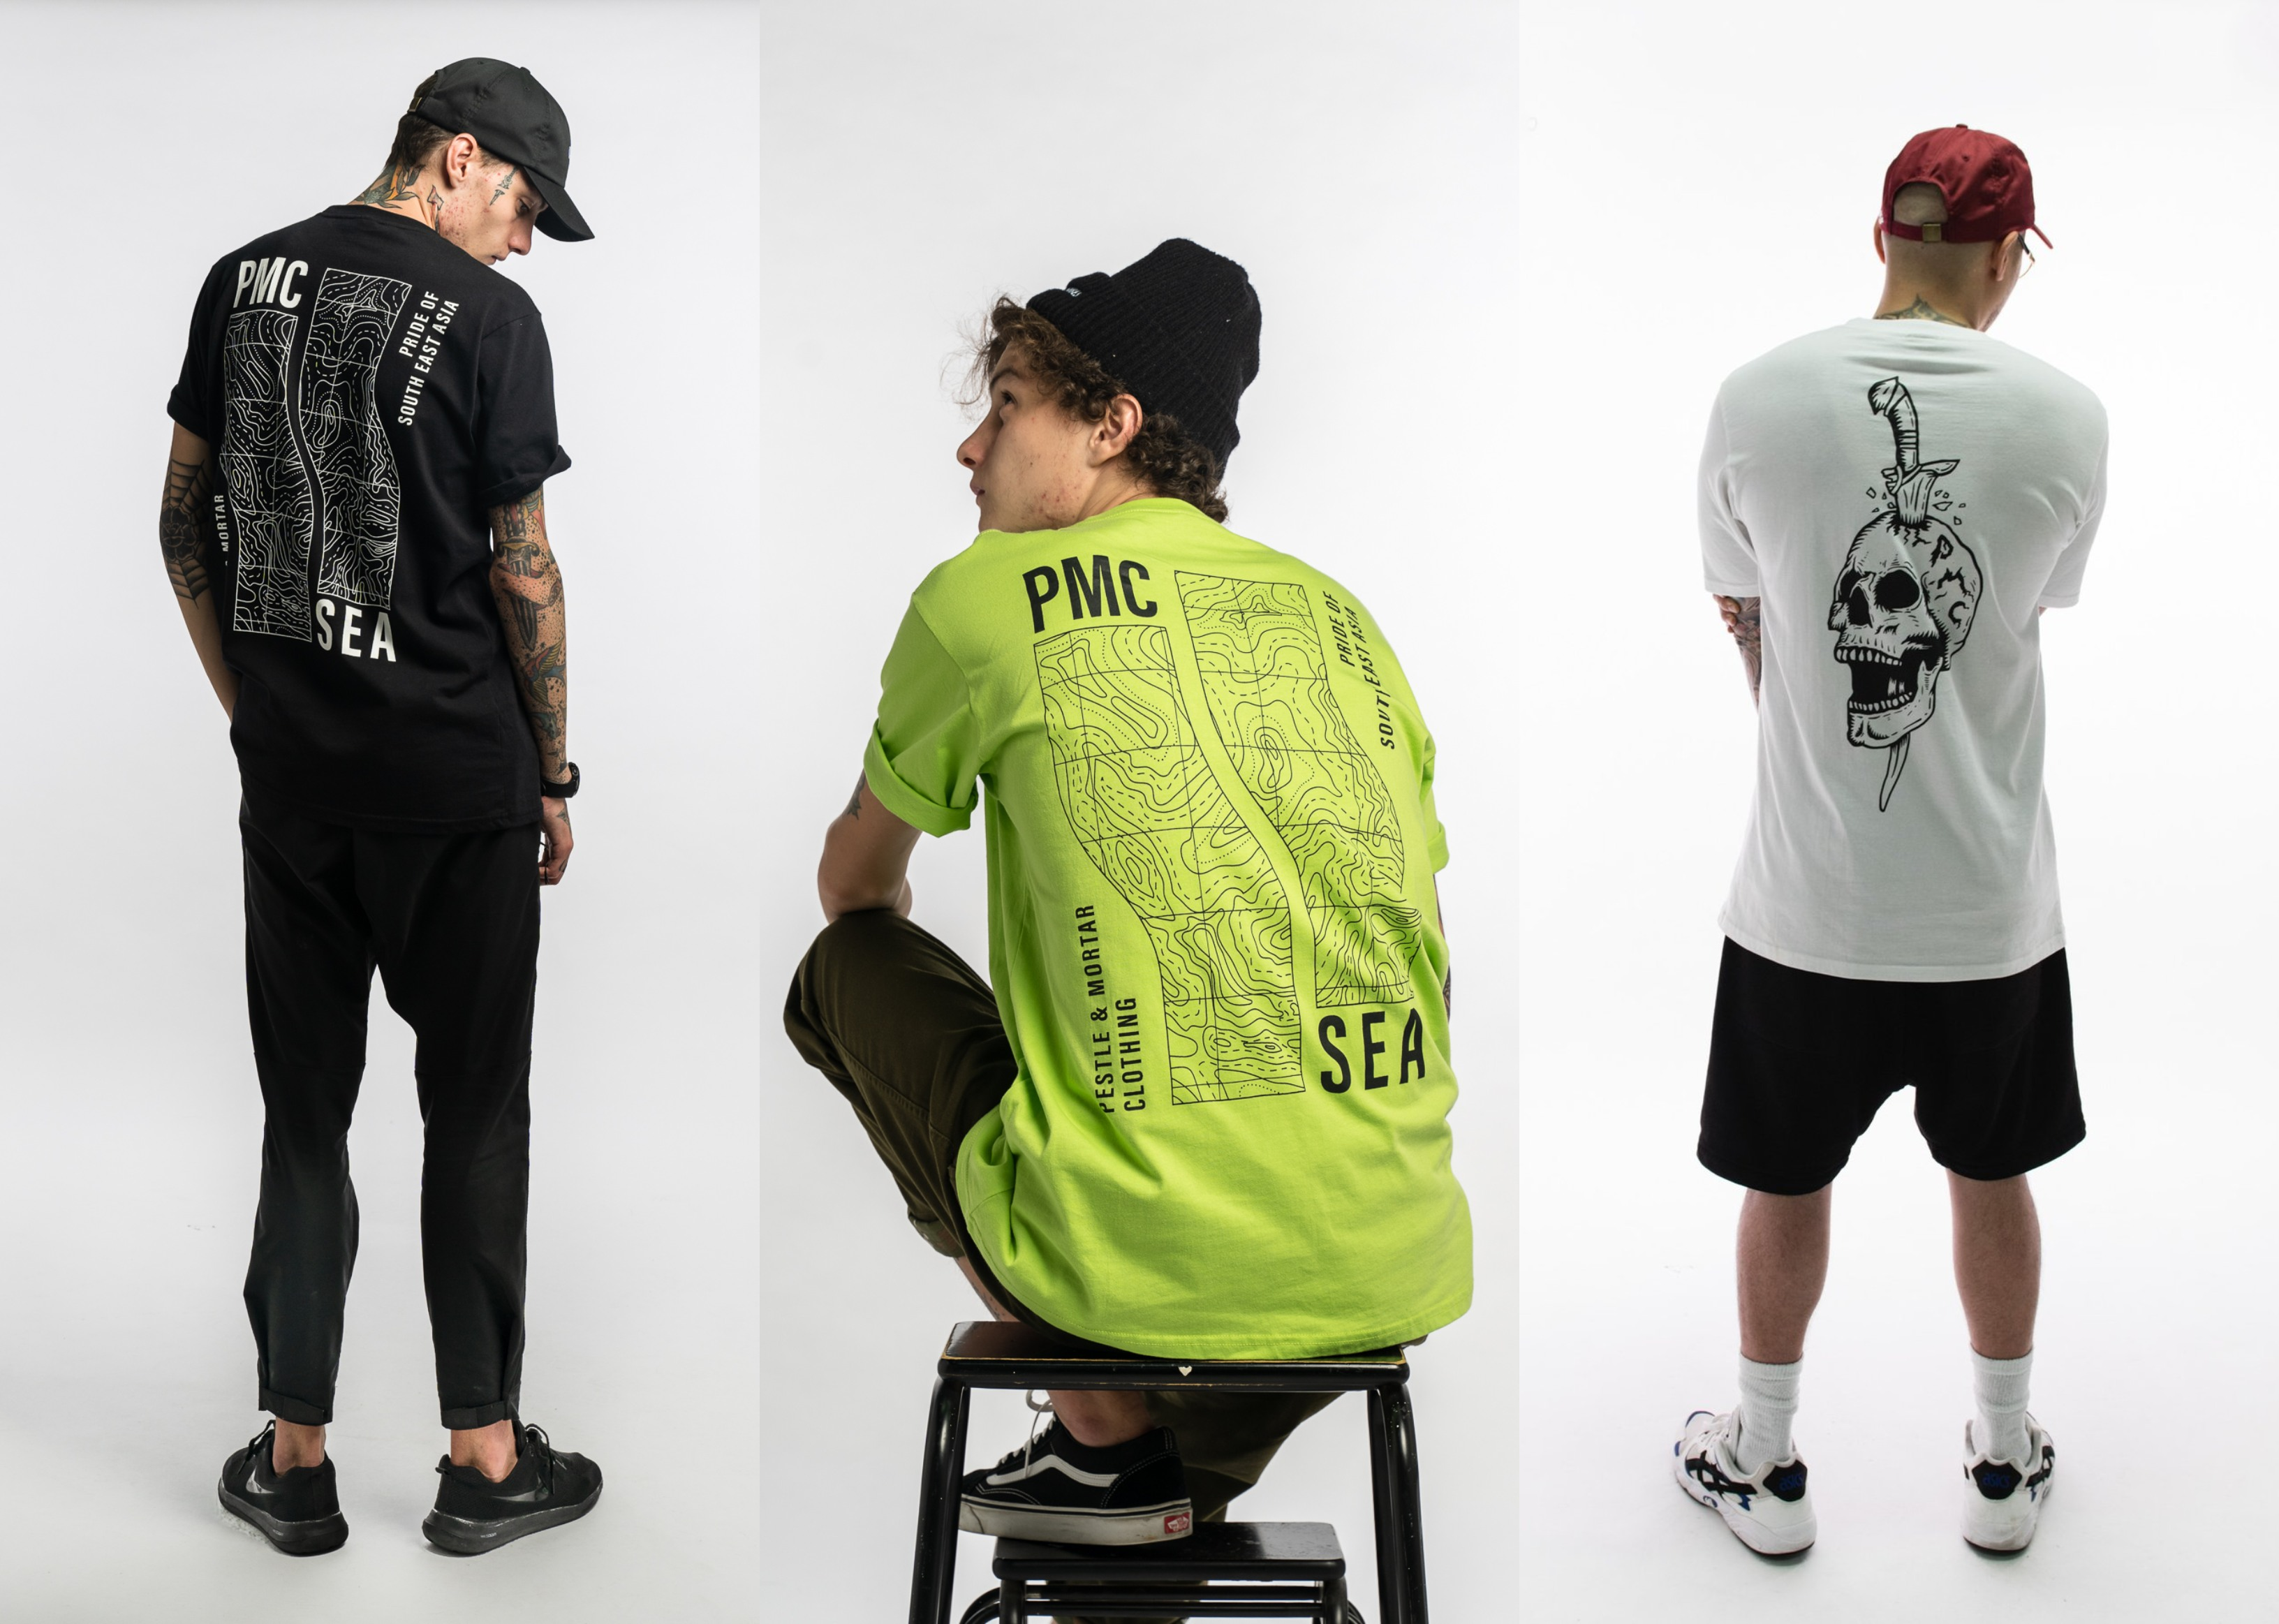 Pestle & Mortar Clothing launches Super Sweaty 2019 collection on brand new website